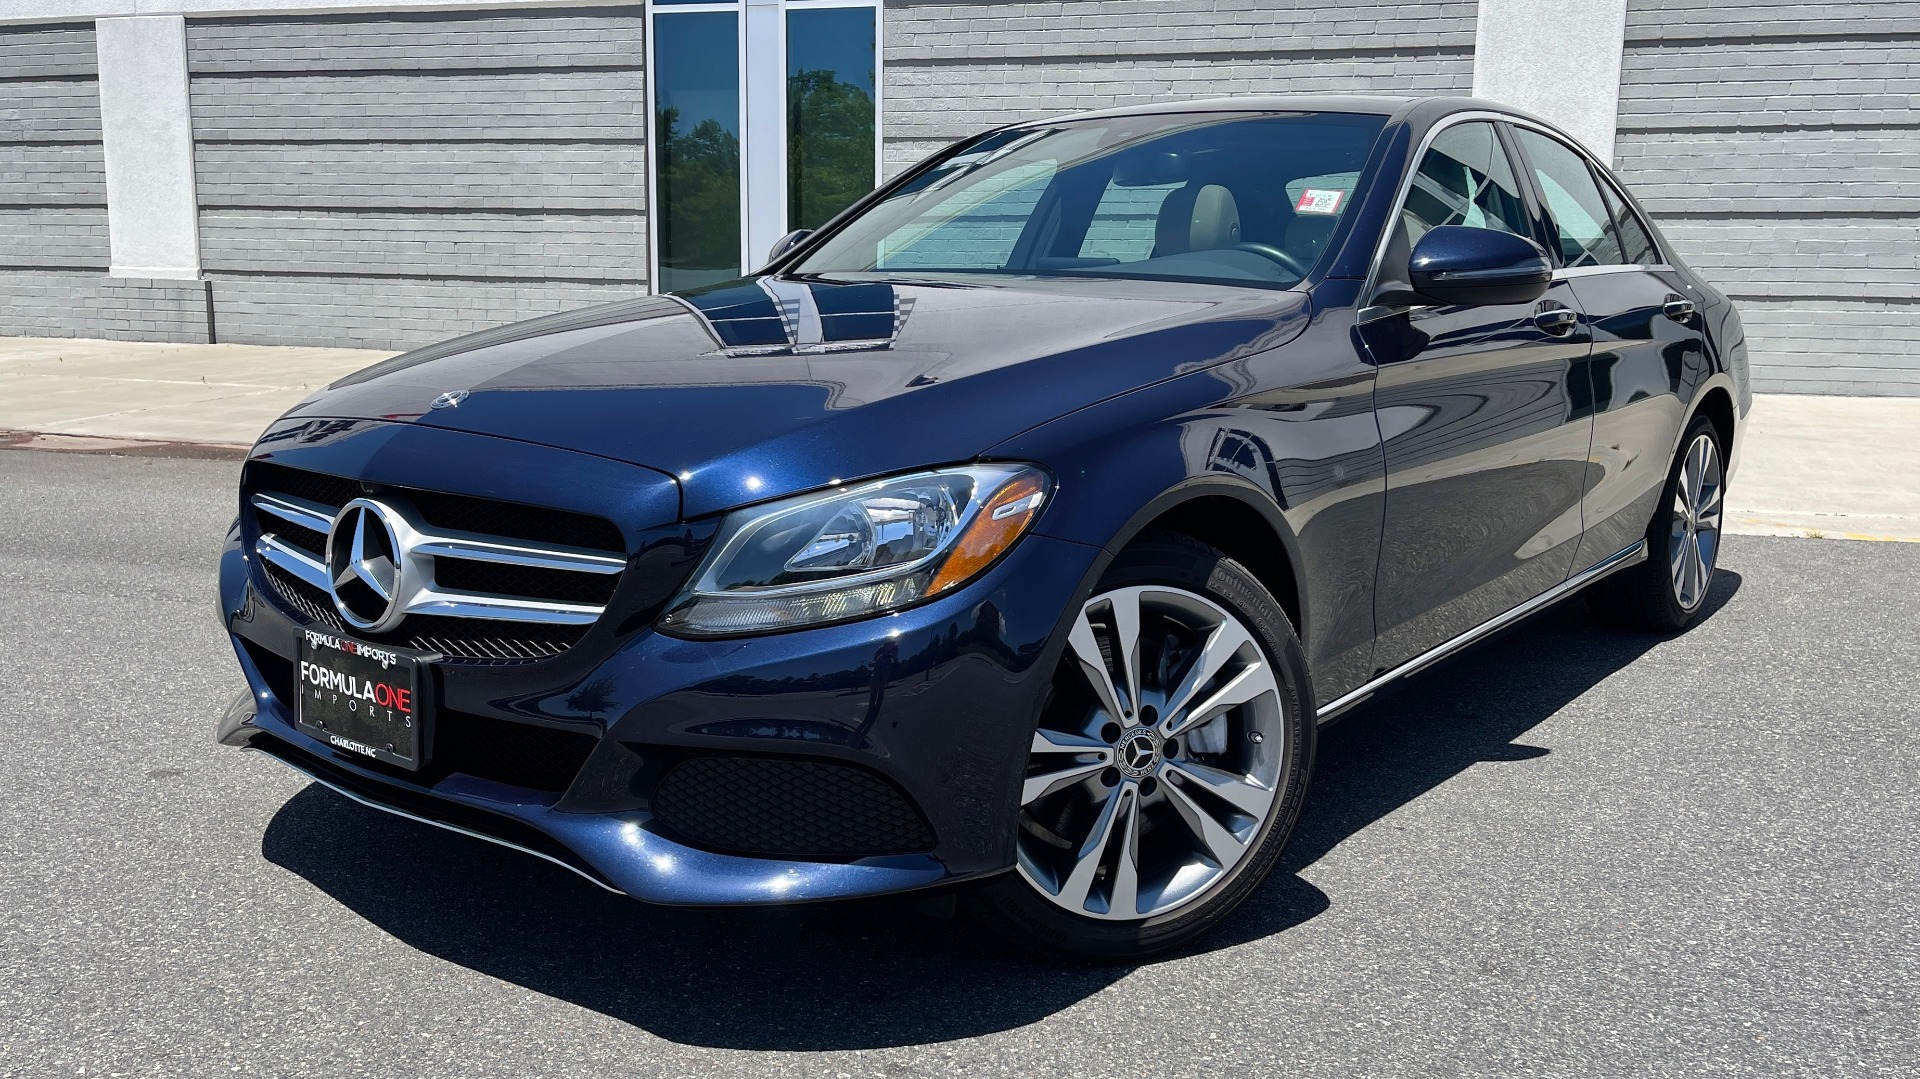 Used 2018 Mercedes-Benz C-CLASS C 300 PREMIUM / KEYLESS-GO / PANO-ROOF / BURMESTER / REARVIEW for sale $29,495 at Formula Imports in Charlotte NC 28227 1